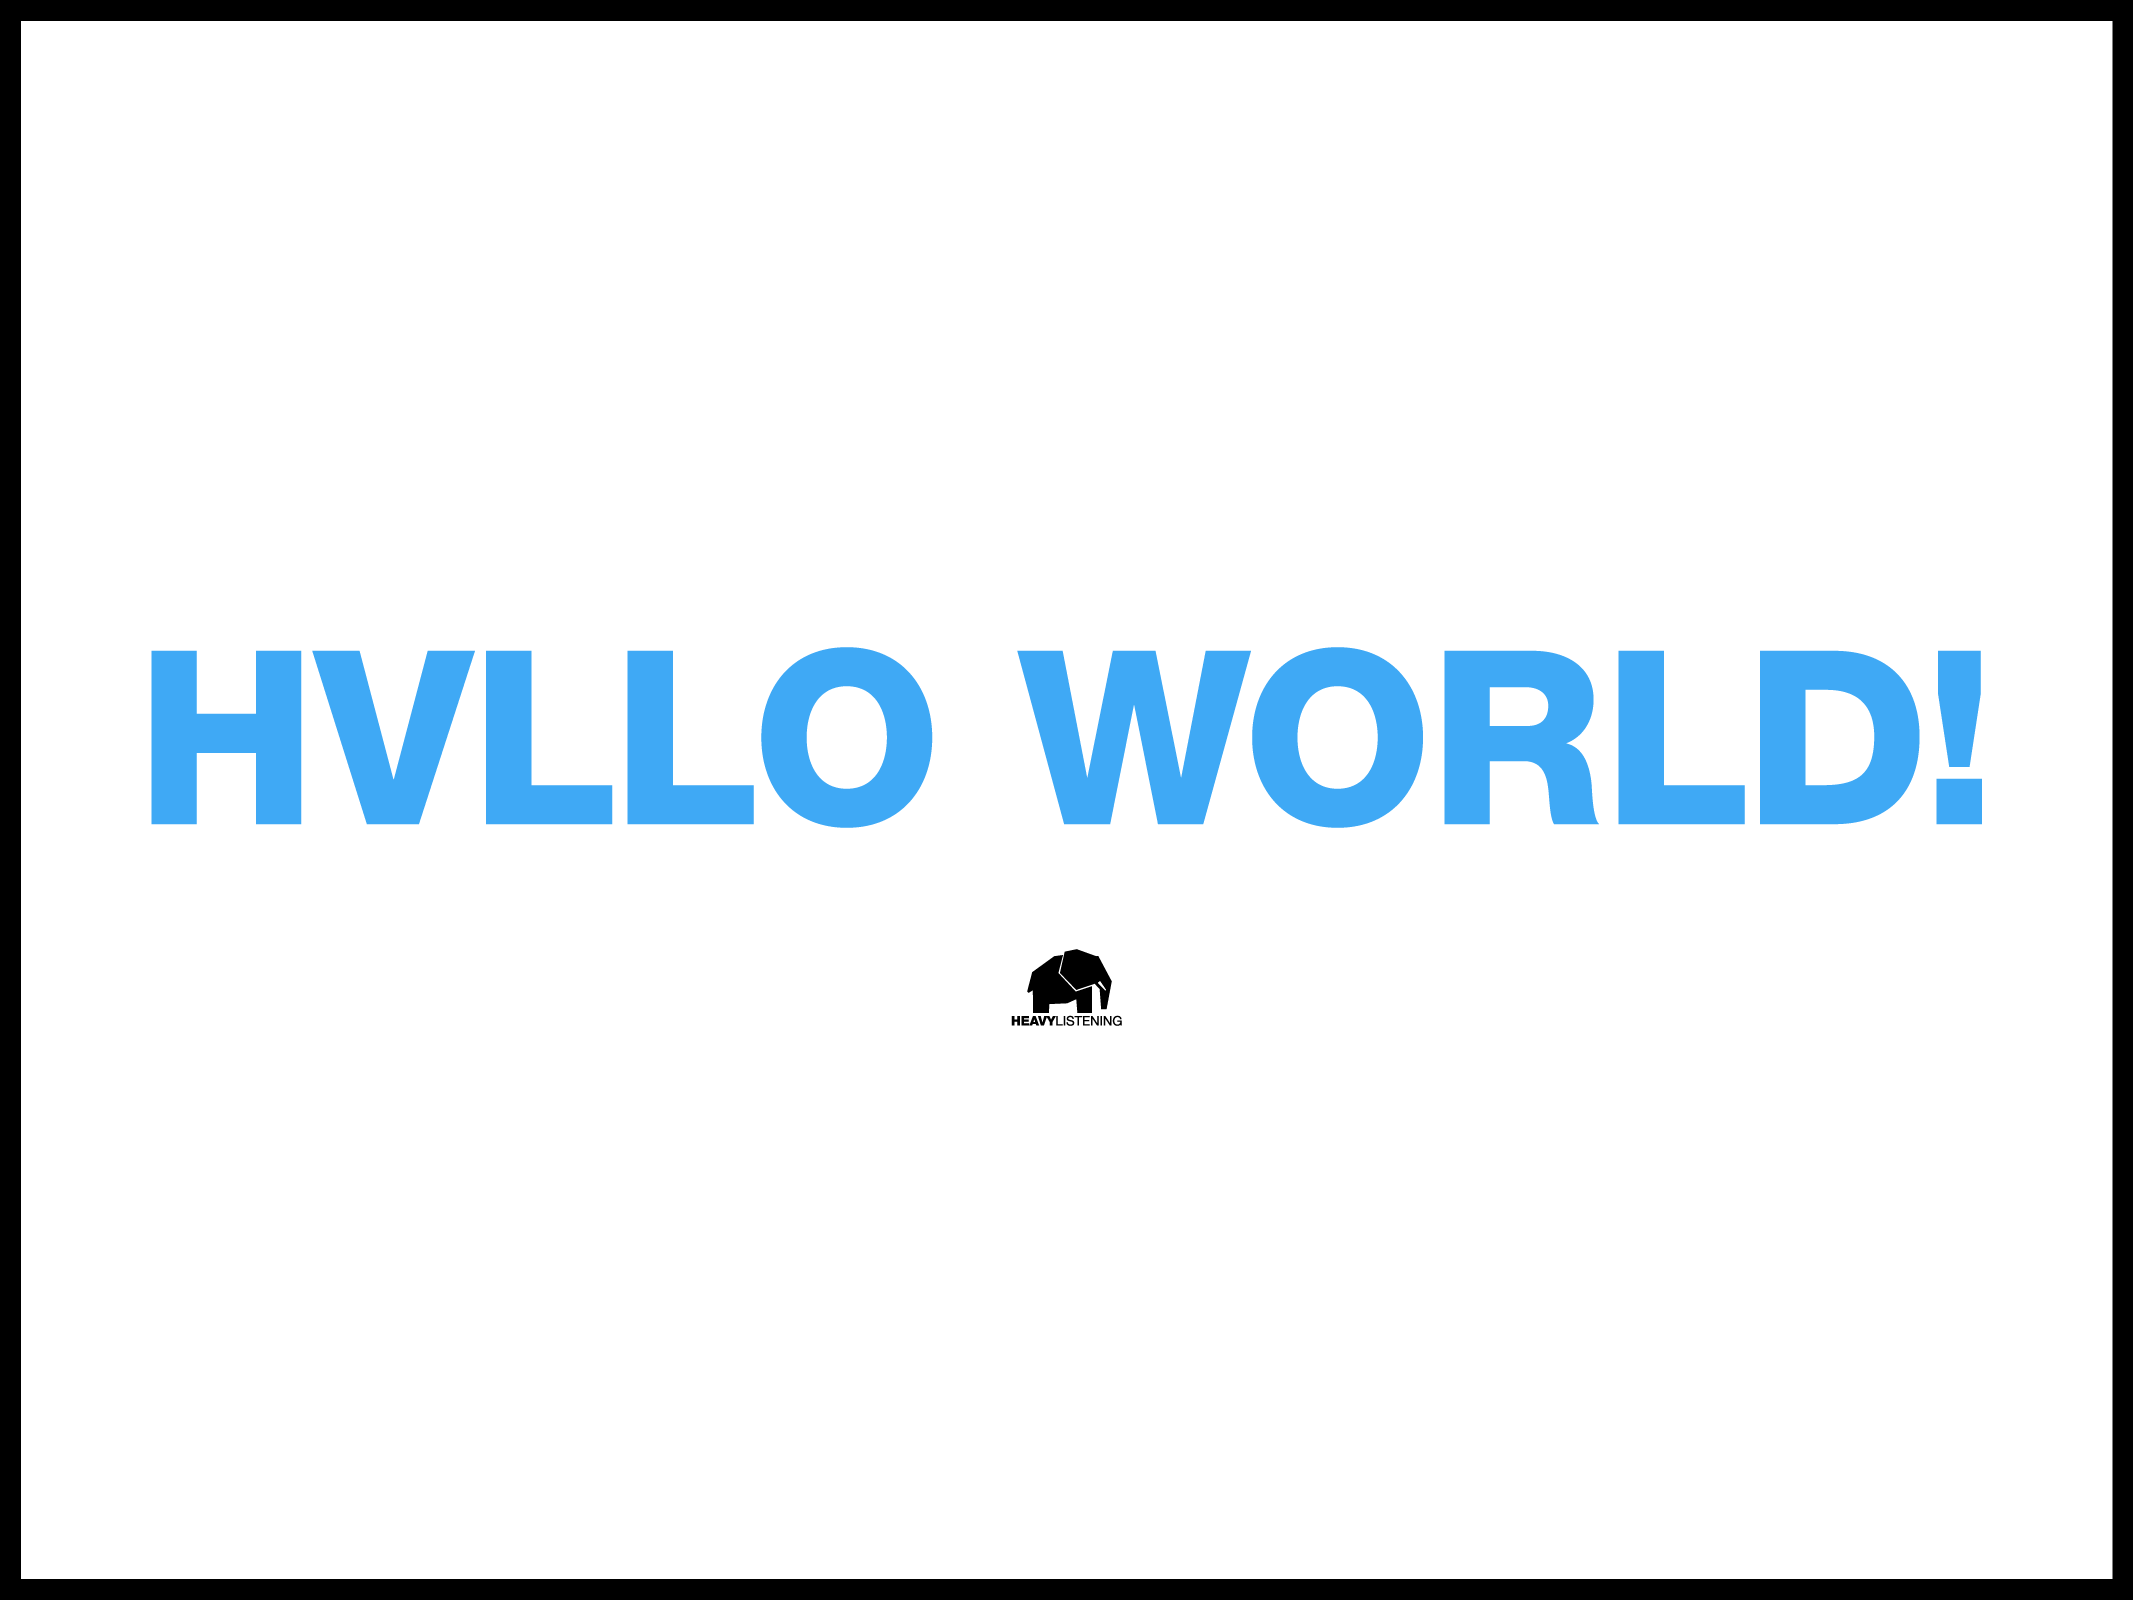 HVLLO WORLD